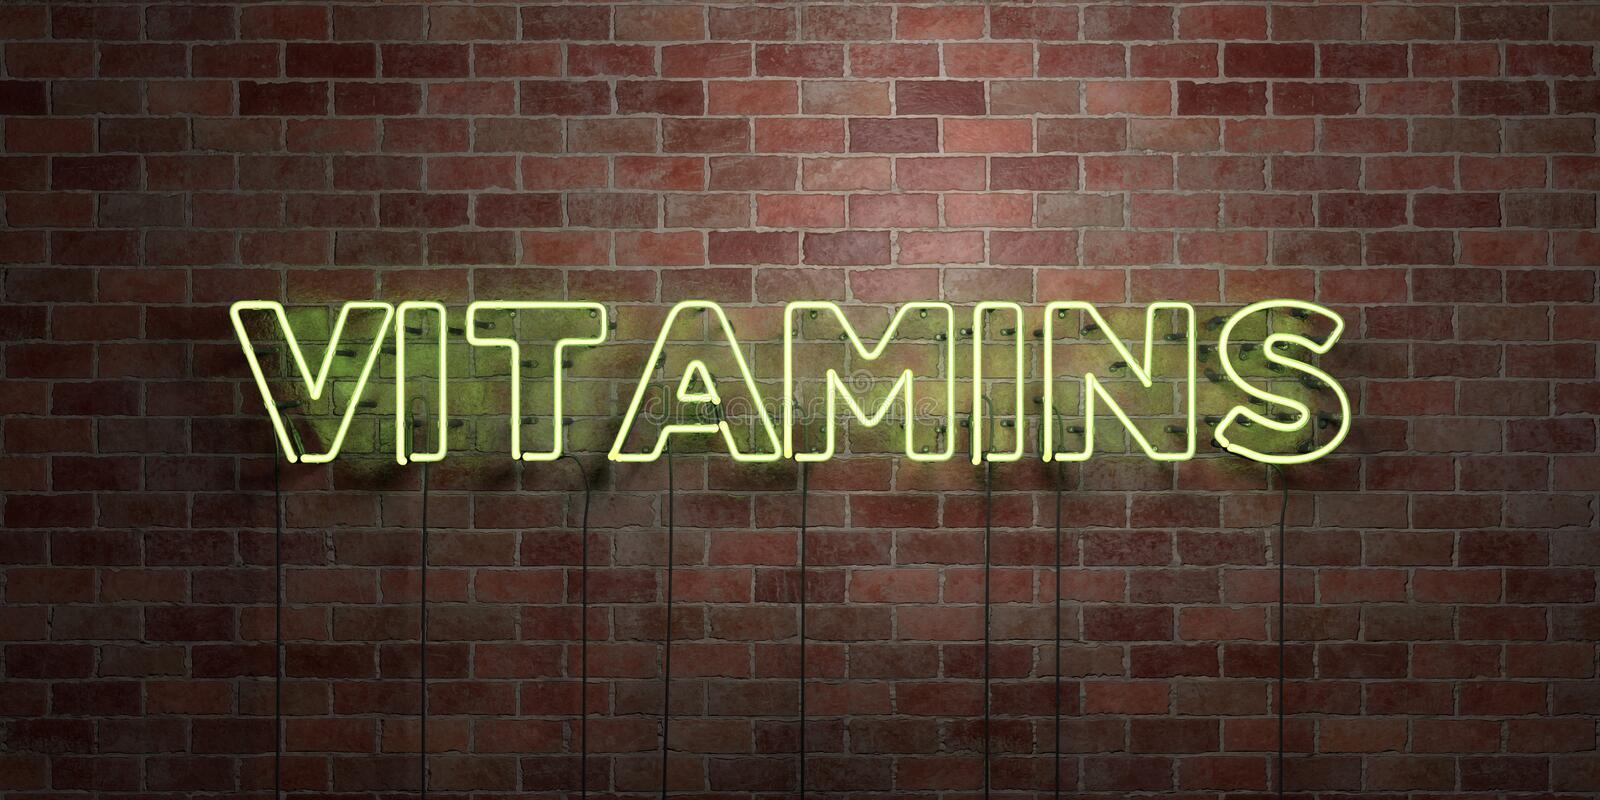 VITAMINS - fluorescent Neon tube Sign on brickwork - Front view - 3D rendered royalty free stock picture. Can be used for online banner ads and direct mailers vector illustration